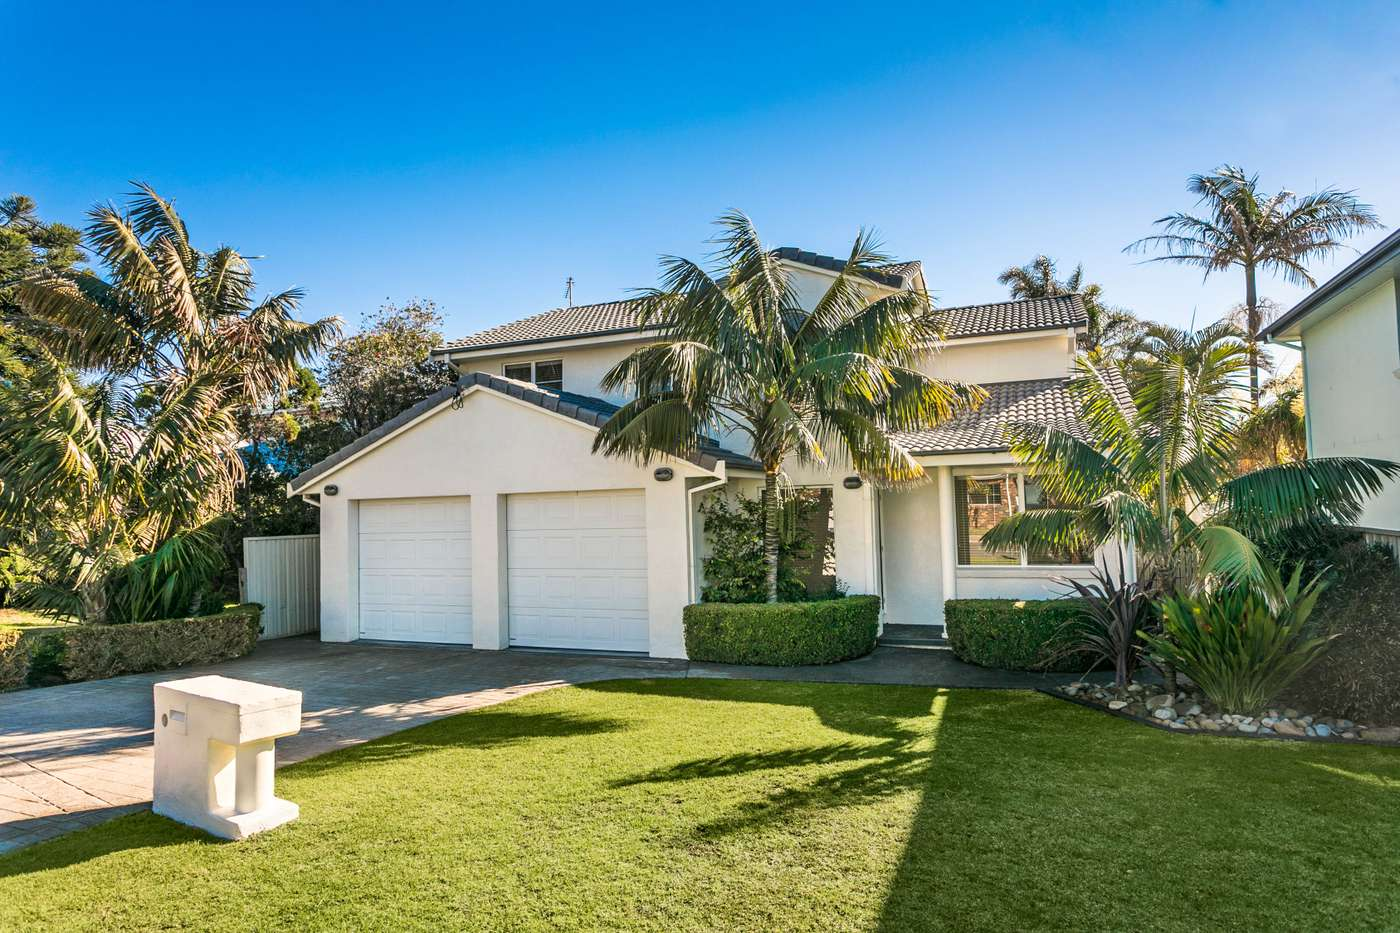 Main view of Homely house listing, 11 Shell Cove Road, Barrack Point, NSW 2528